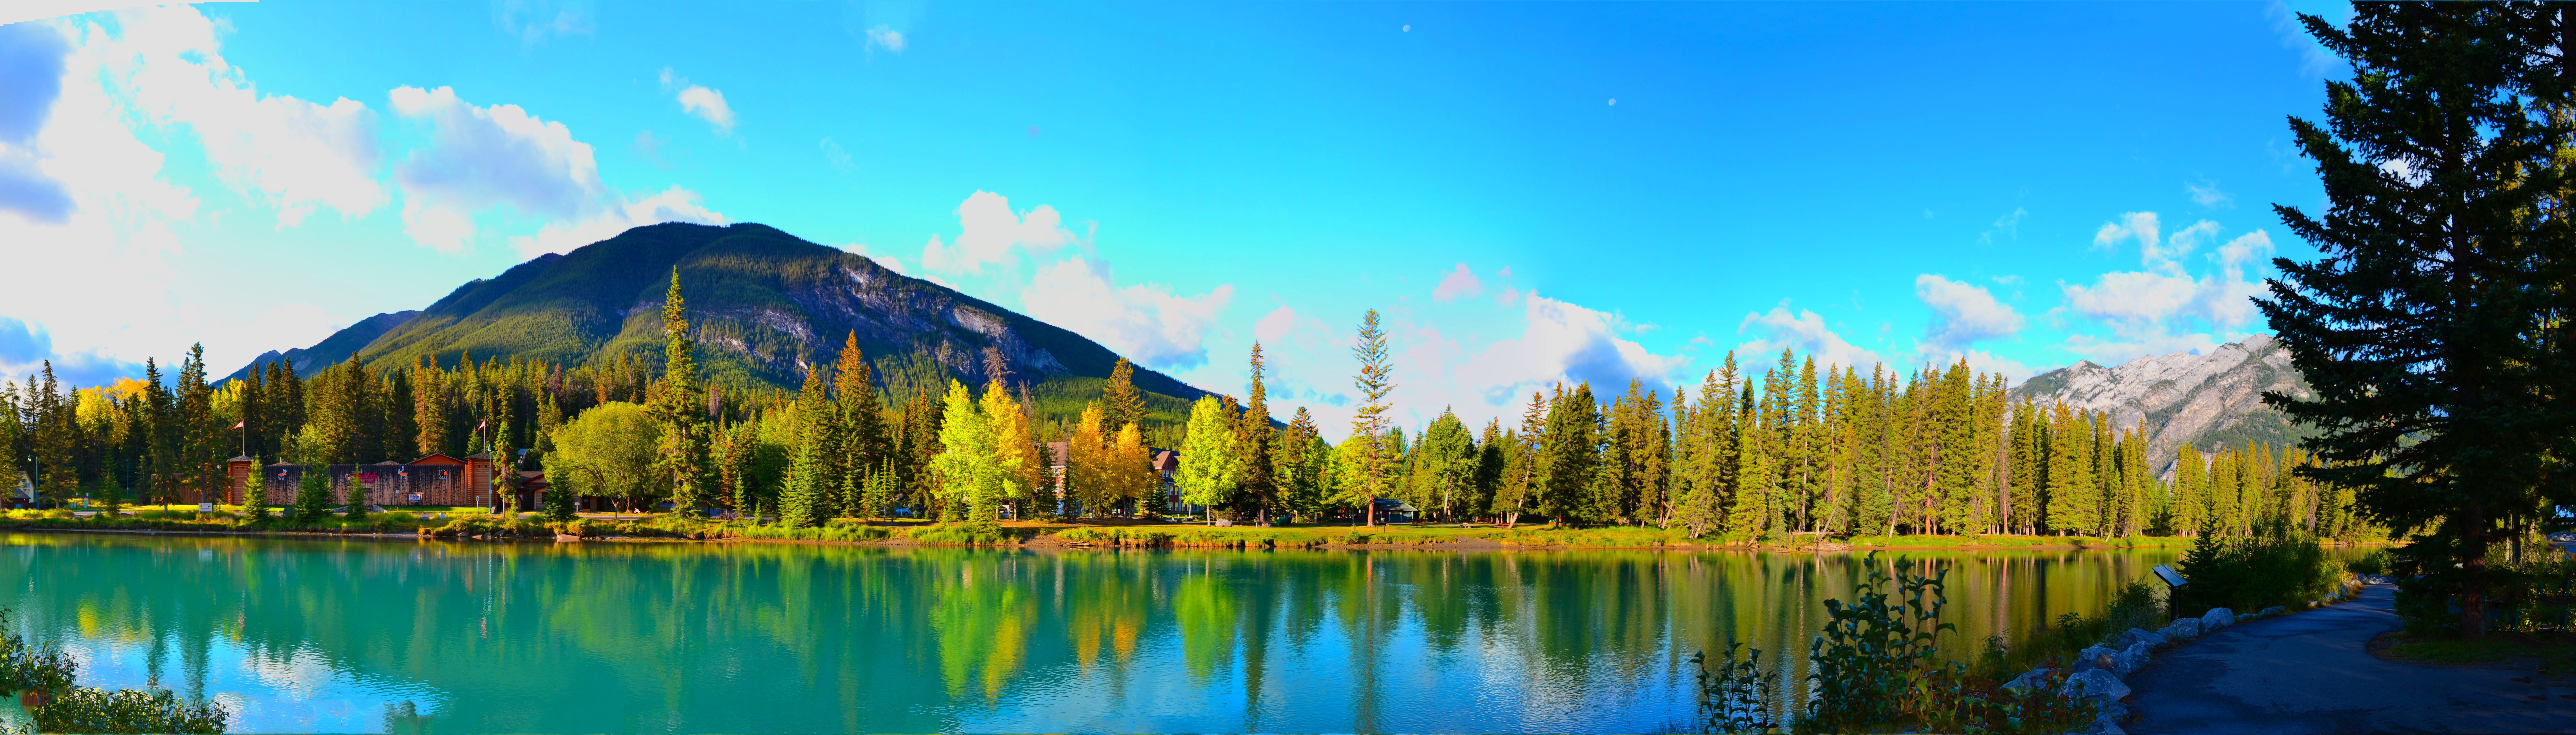 how to get to banff canada